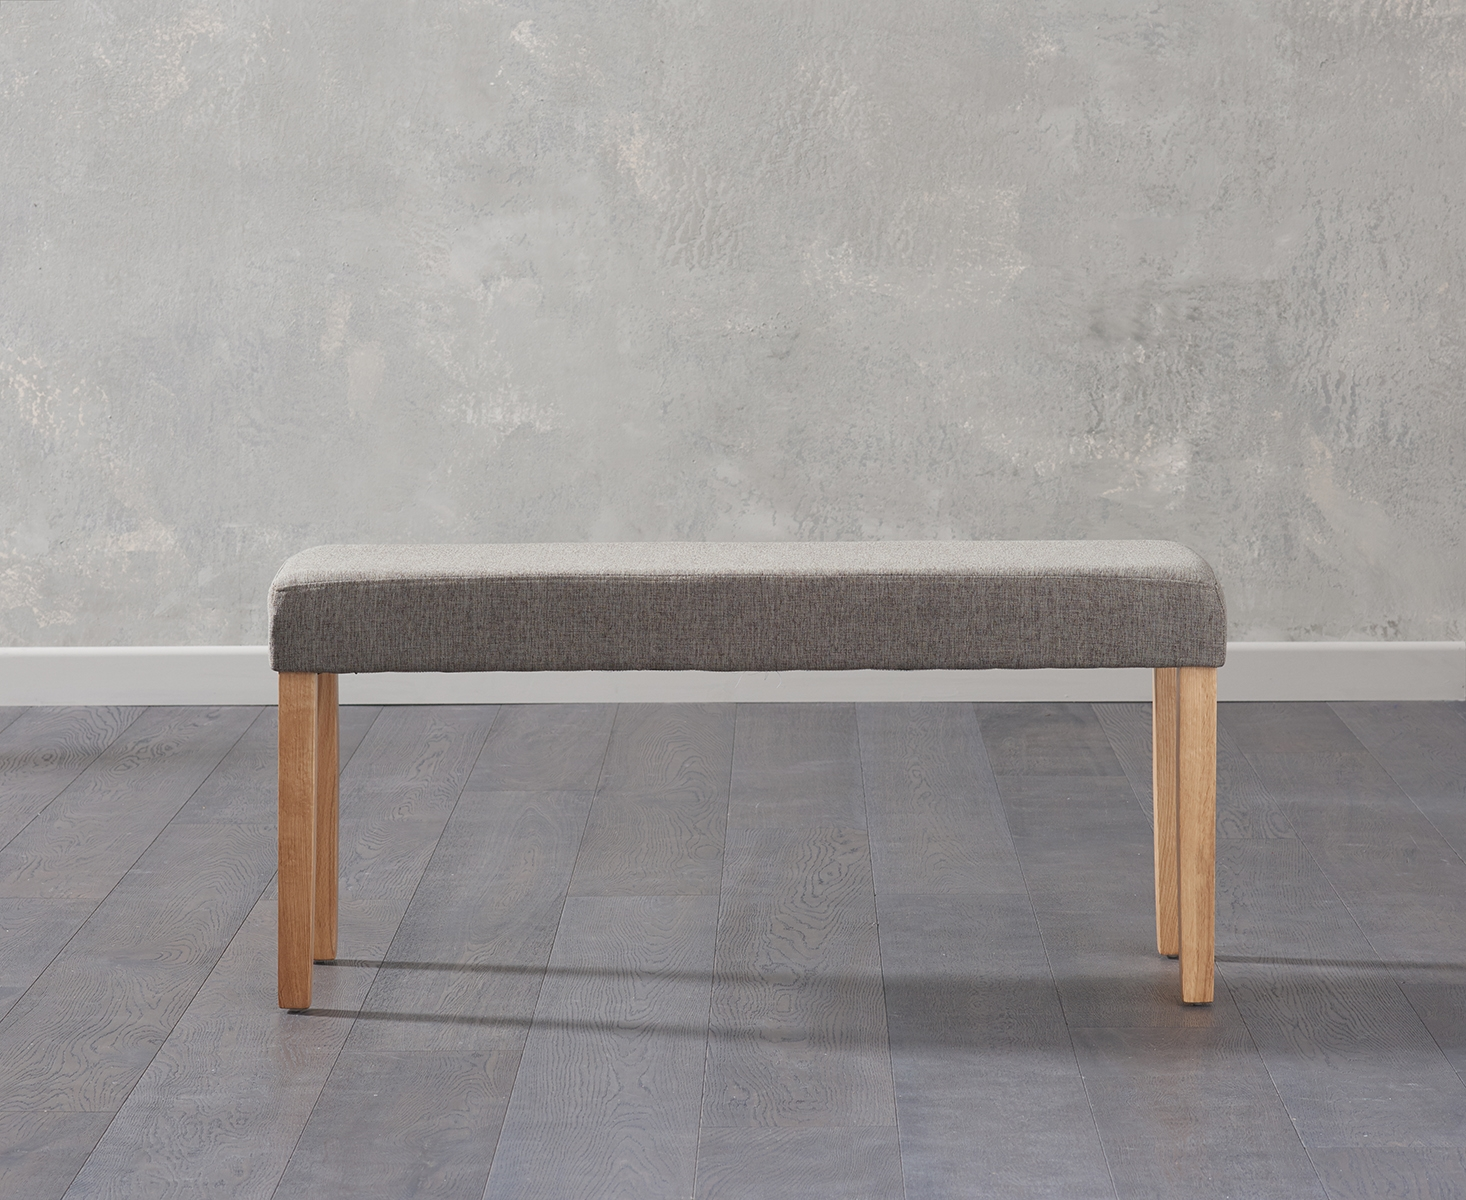 An image of Mia Small Brown Bench